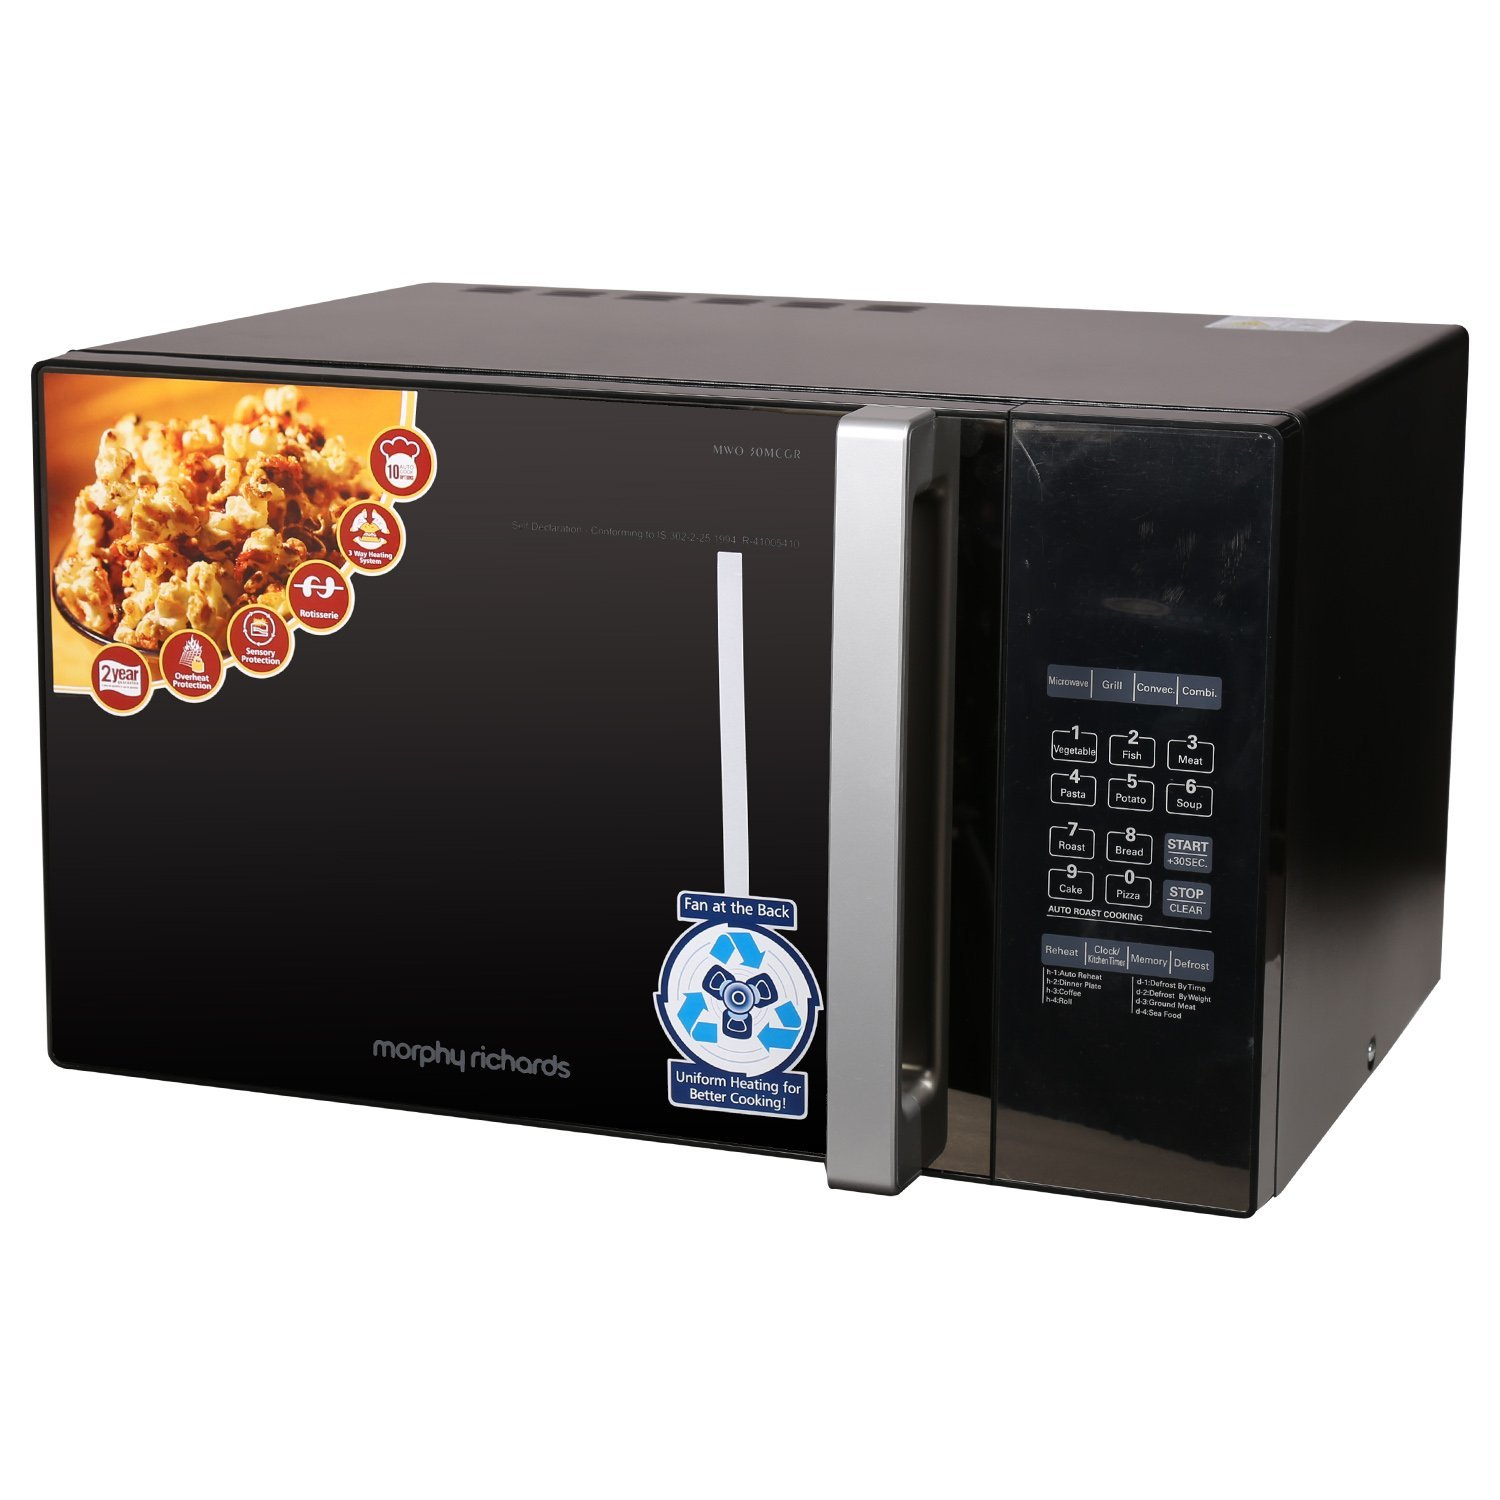 Morphy Richards 30 Liters Oven